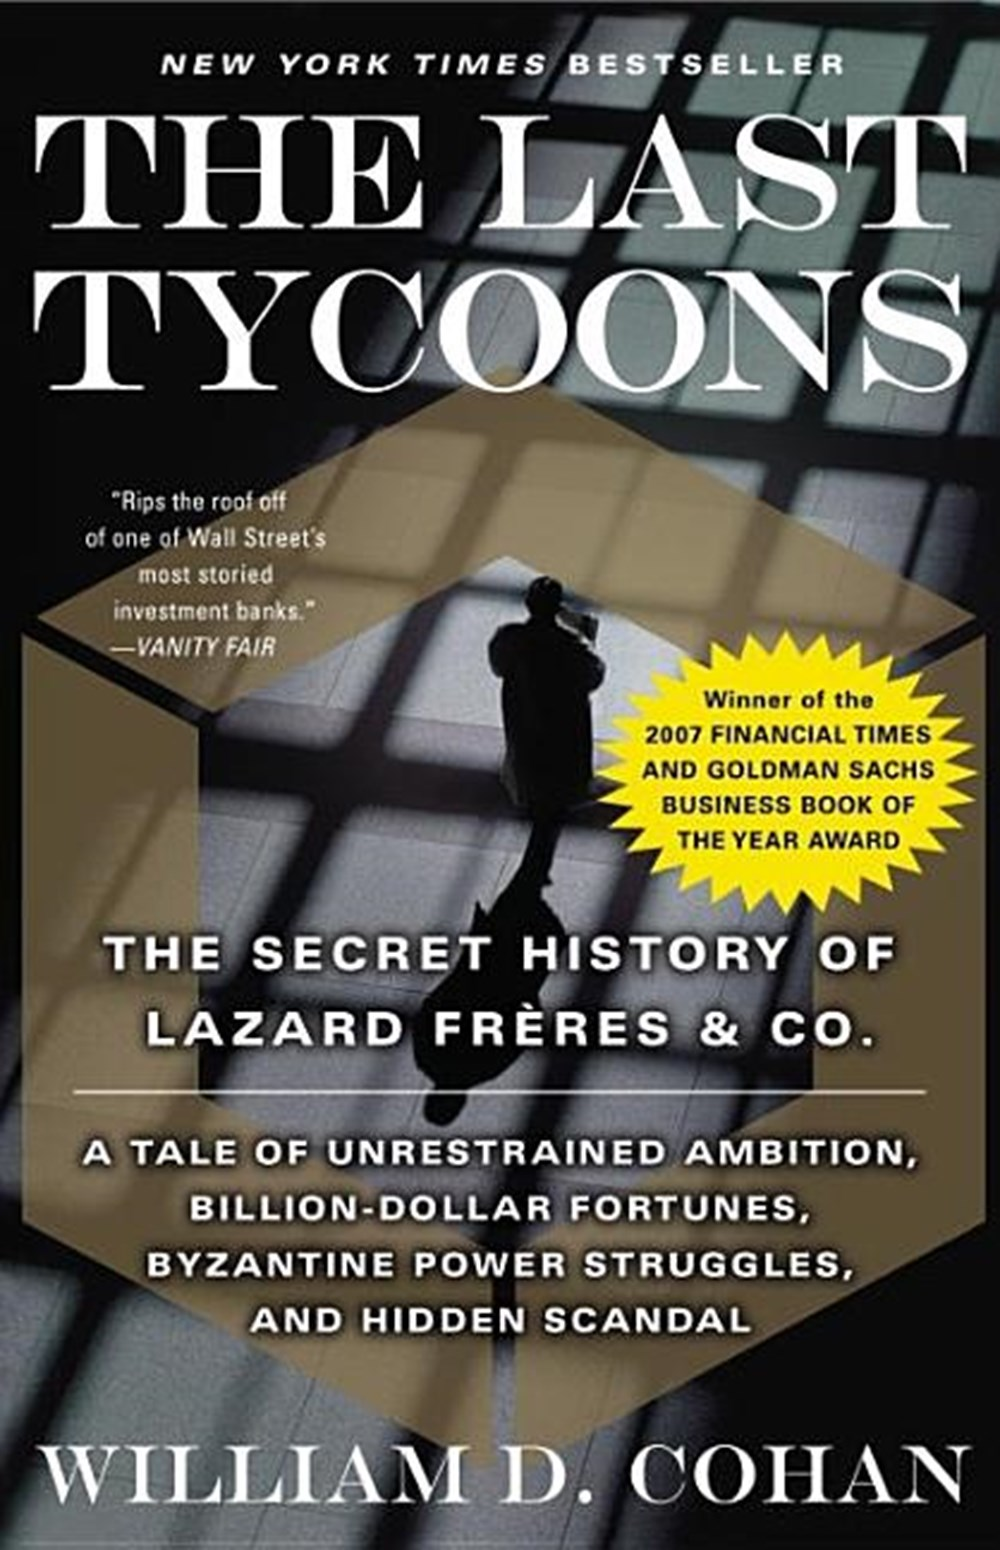 Last Tycoons The Secret History of Lazard Fr�res & Co.